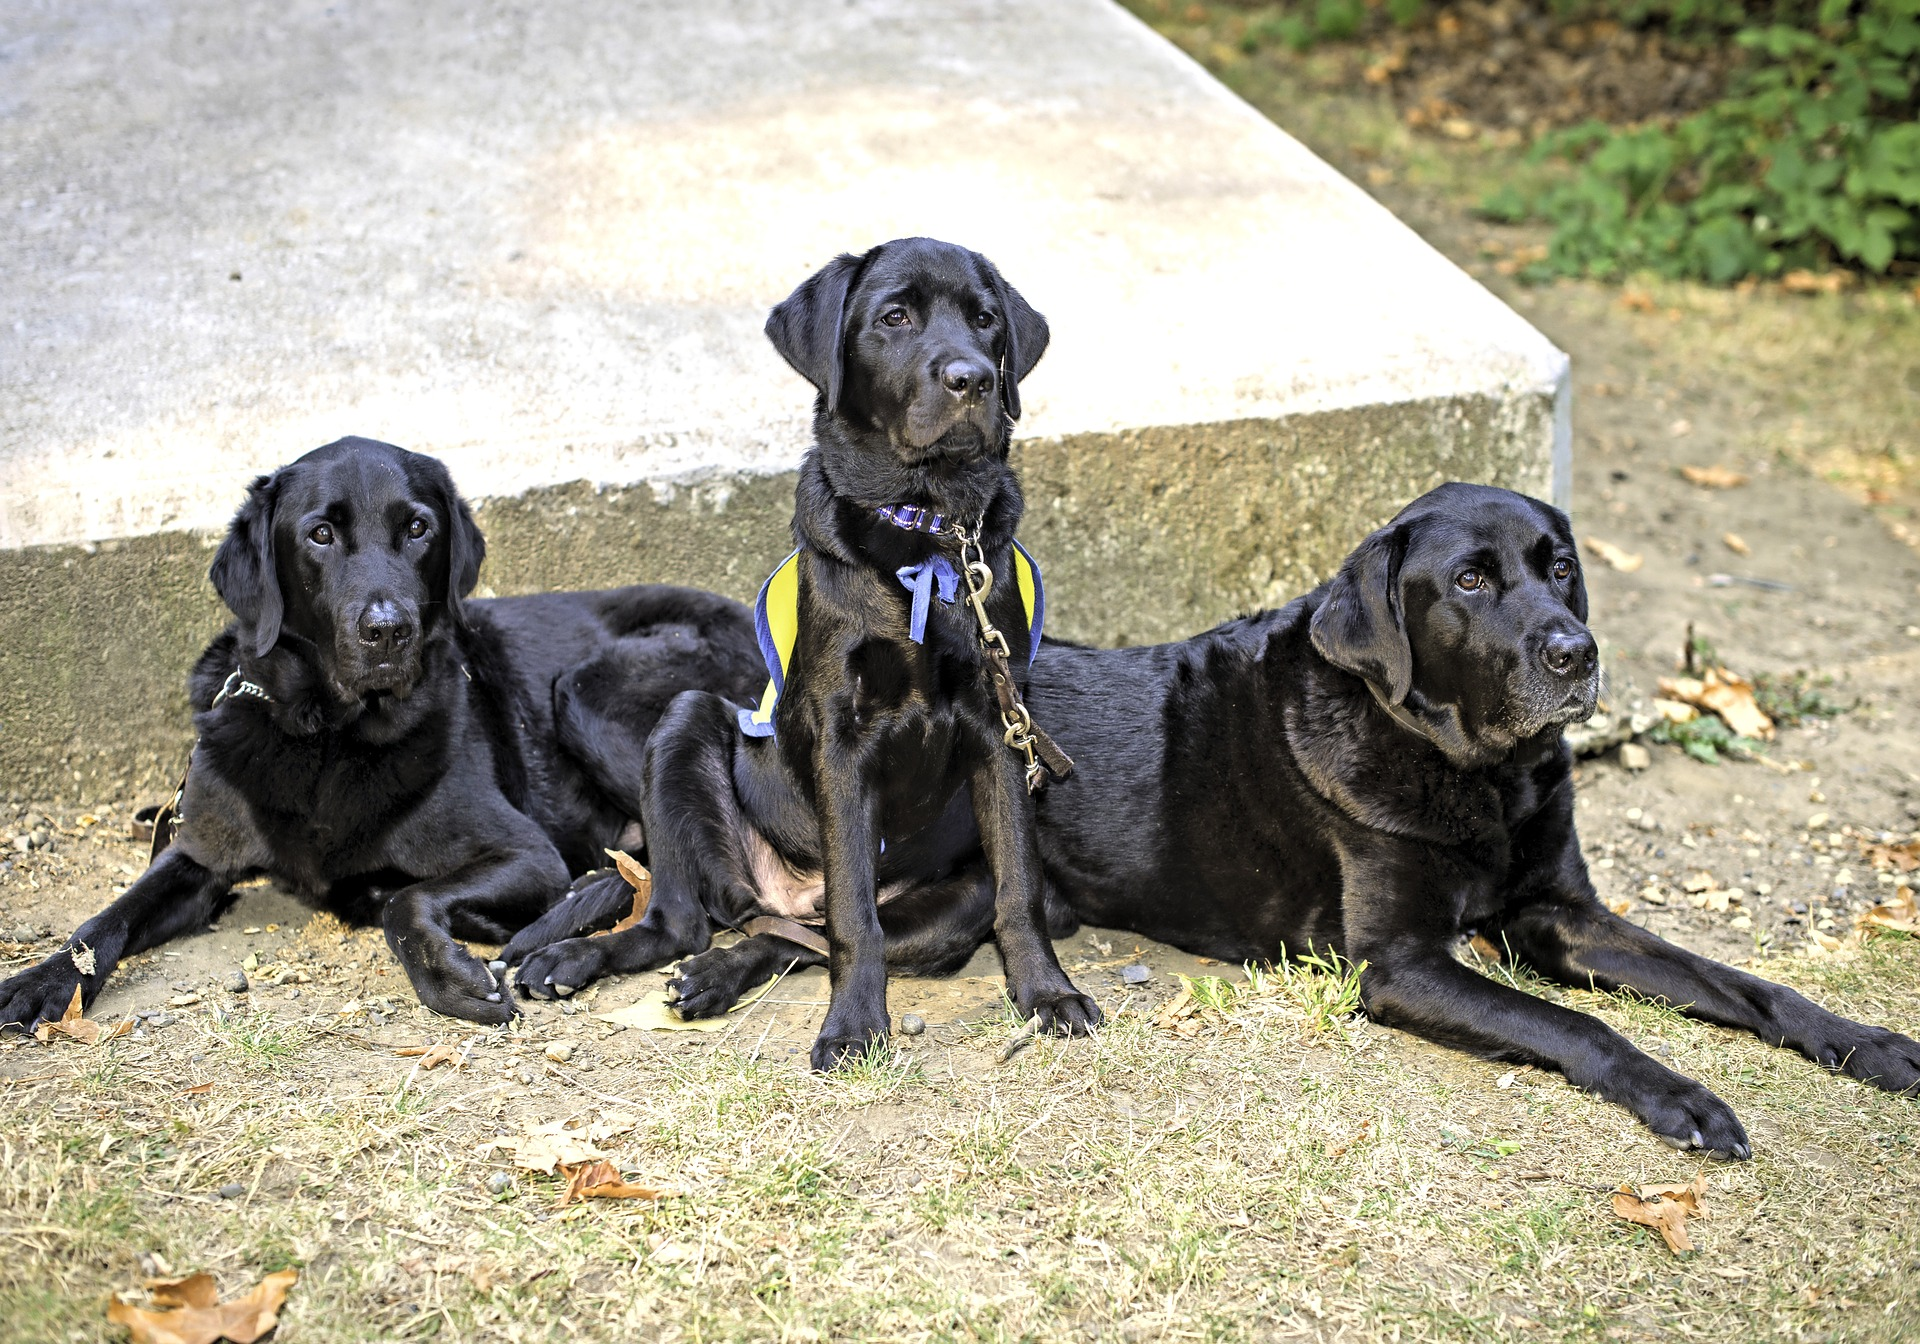 Three service dogs